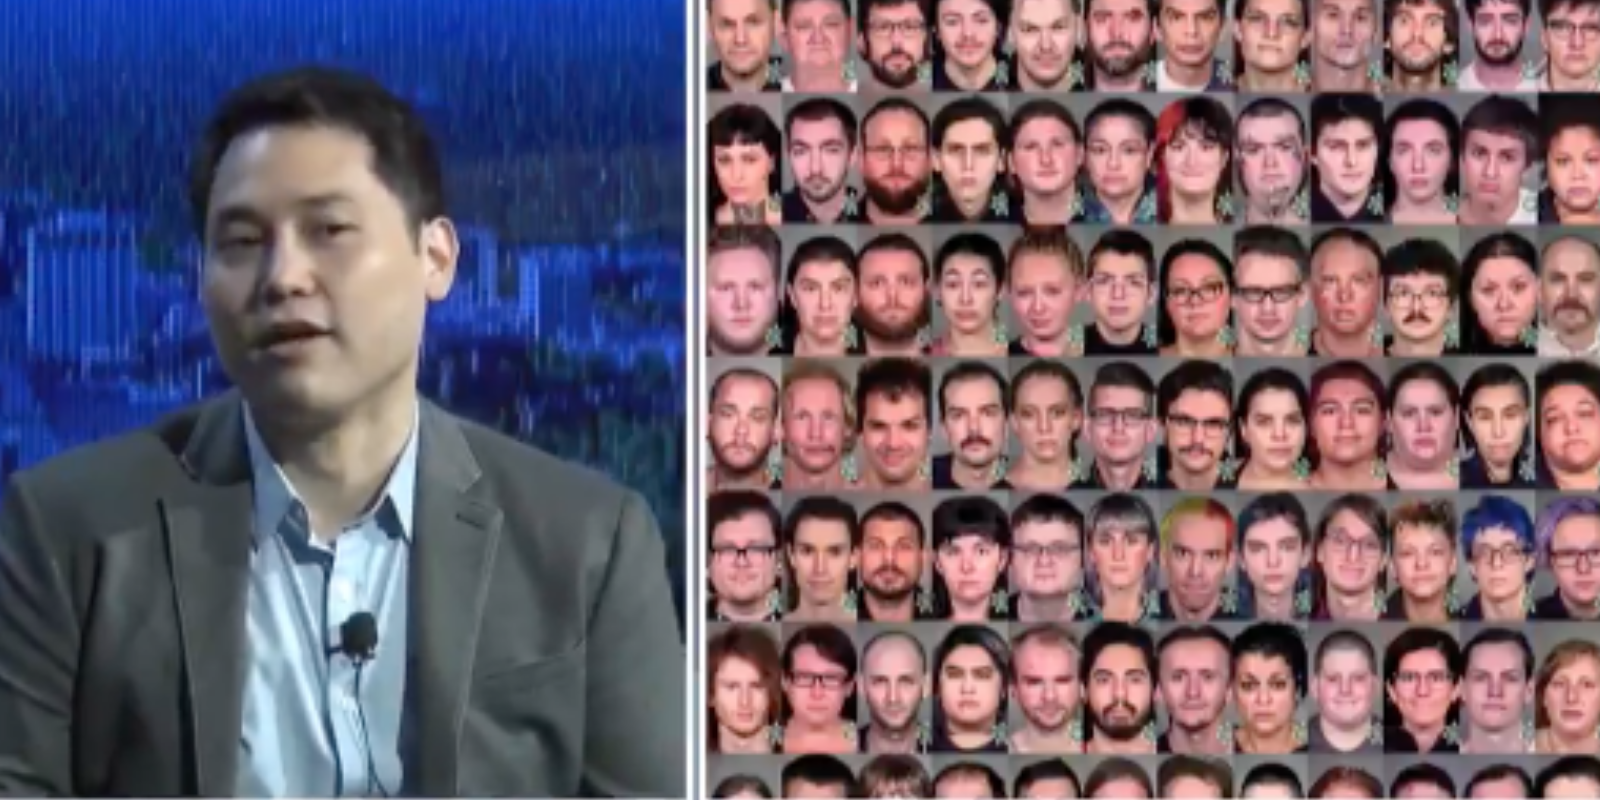 WATCH: Is this the 'white supremacy Joe Biden has been talking about?' Andy Ngo reveals Antifa demographics